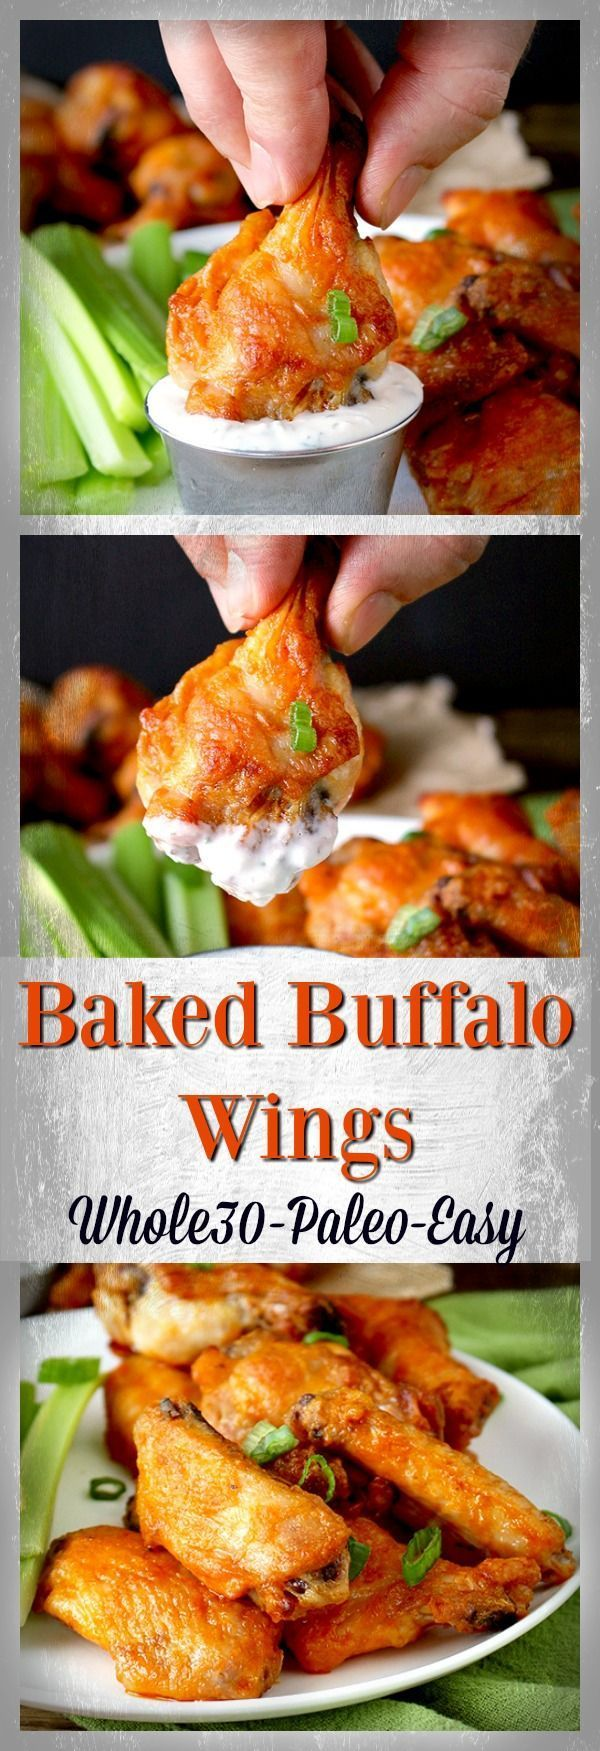 Paleo Baked Buffalo Wings- crispy, juicy, easy, healthy, and delicious! Whole30, dairy free, and gluten free. Uses ghee in place of the butter.